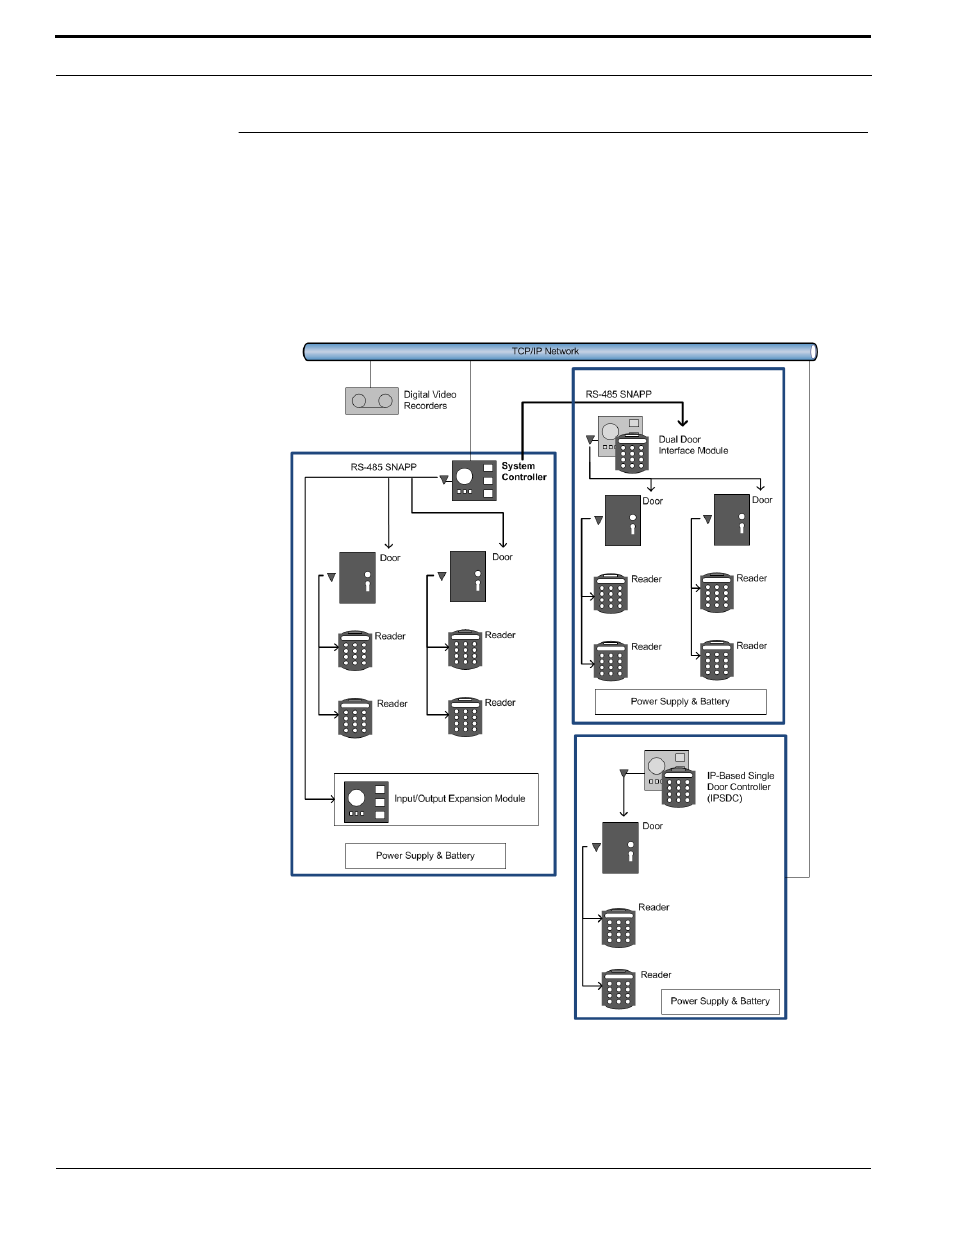 Truportal Wiring Diagram Access Control Interface Module System Architecture Overview Interlogix User Manual